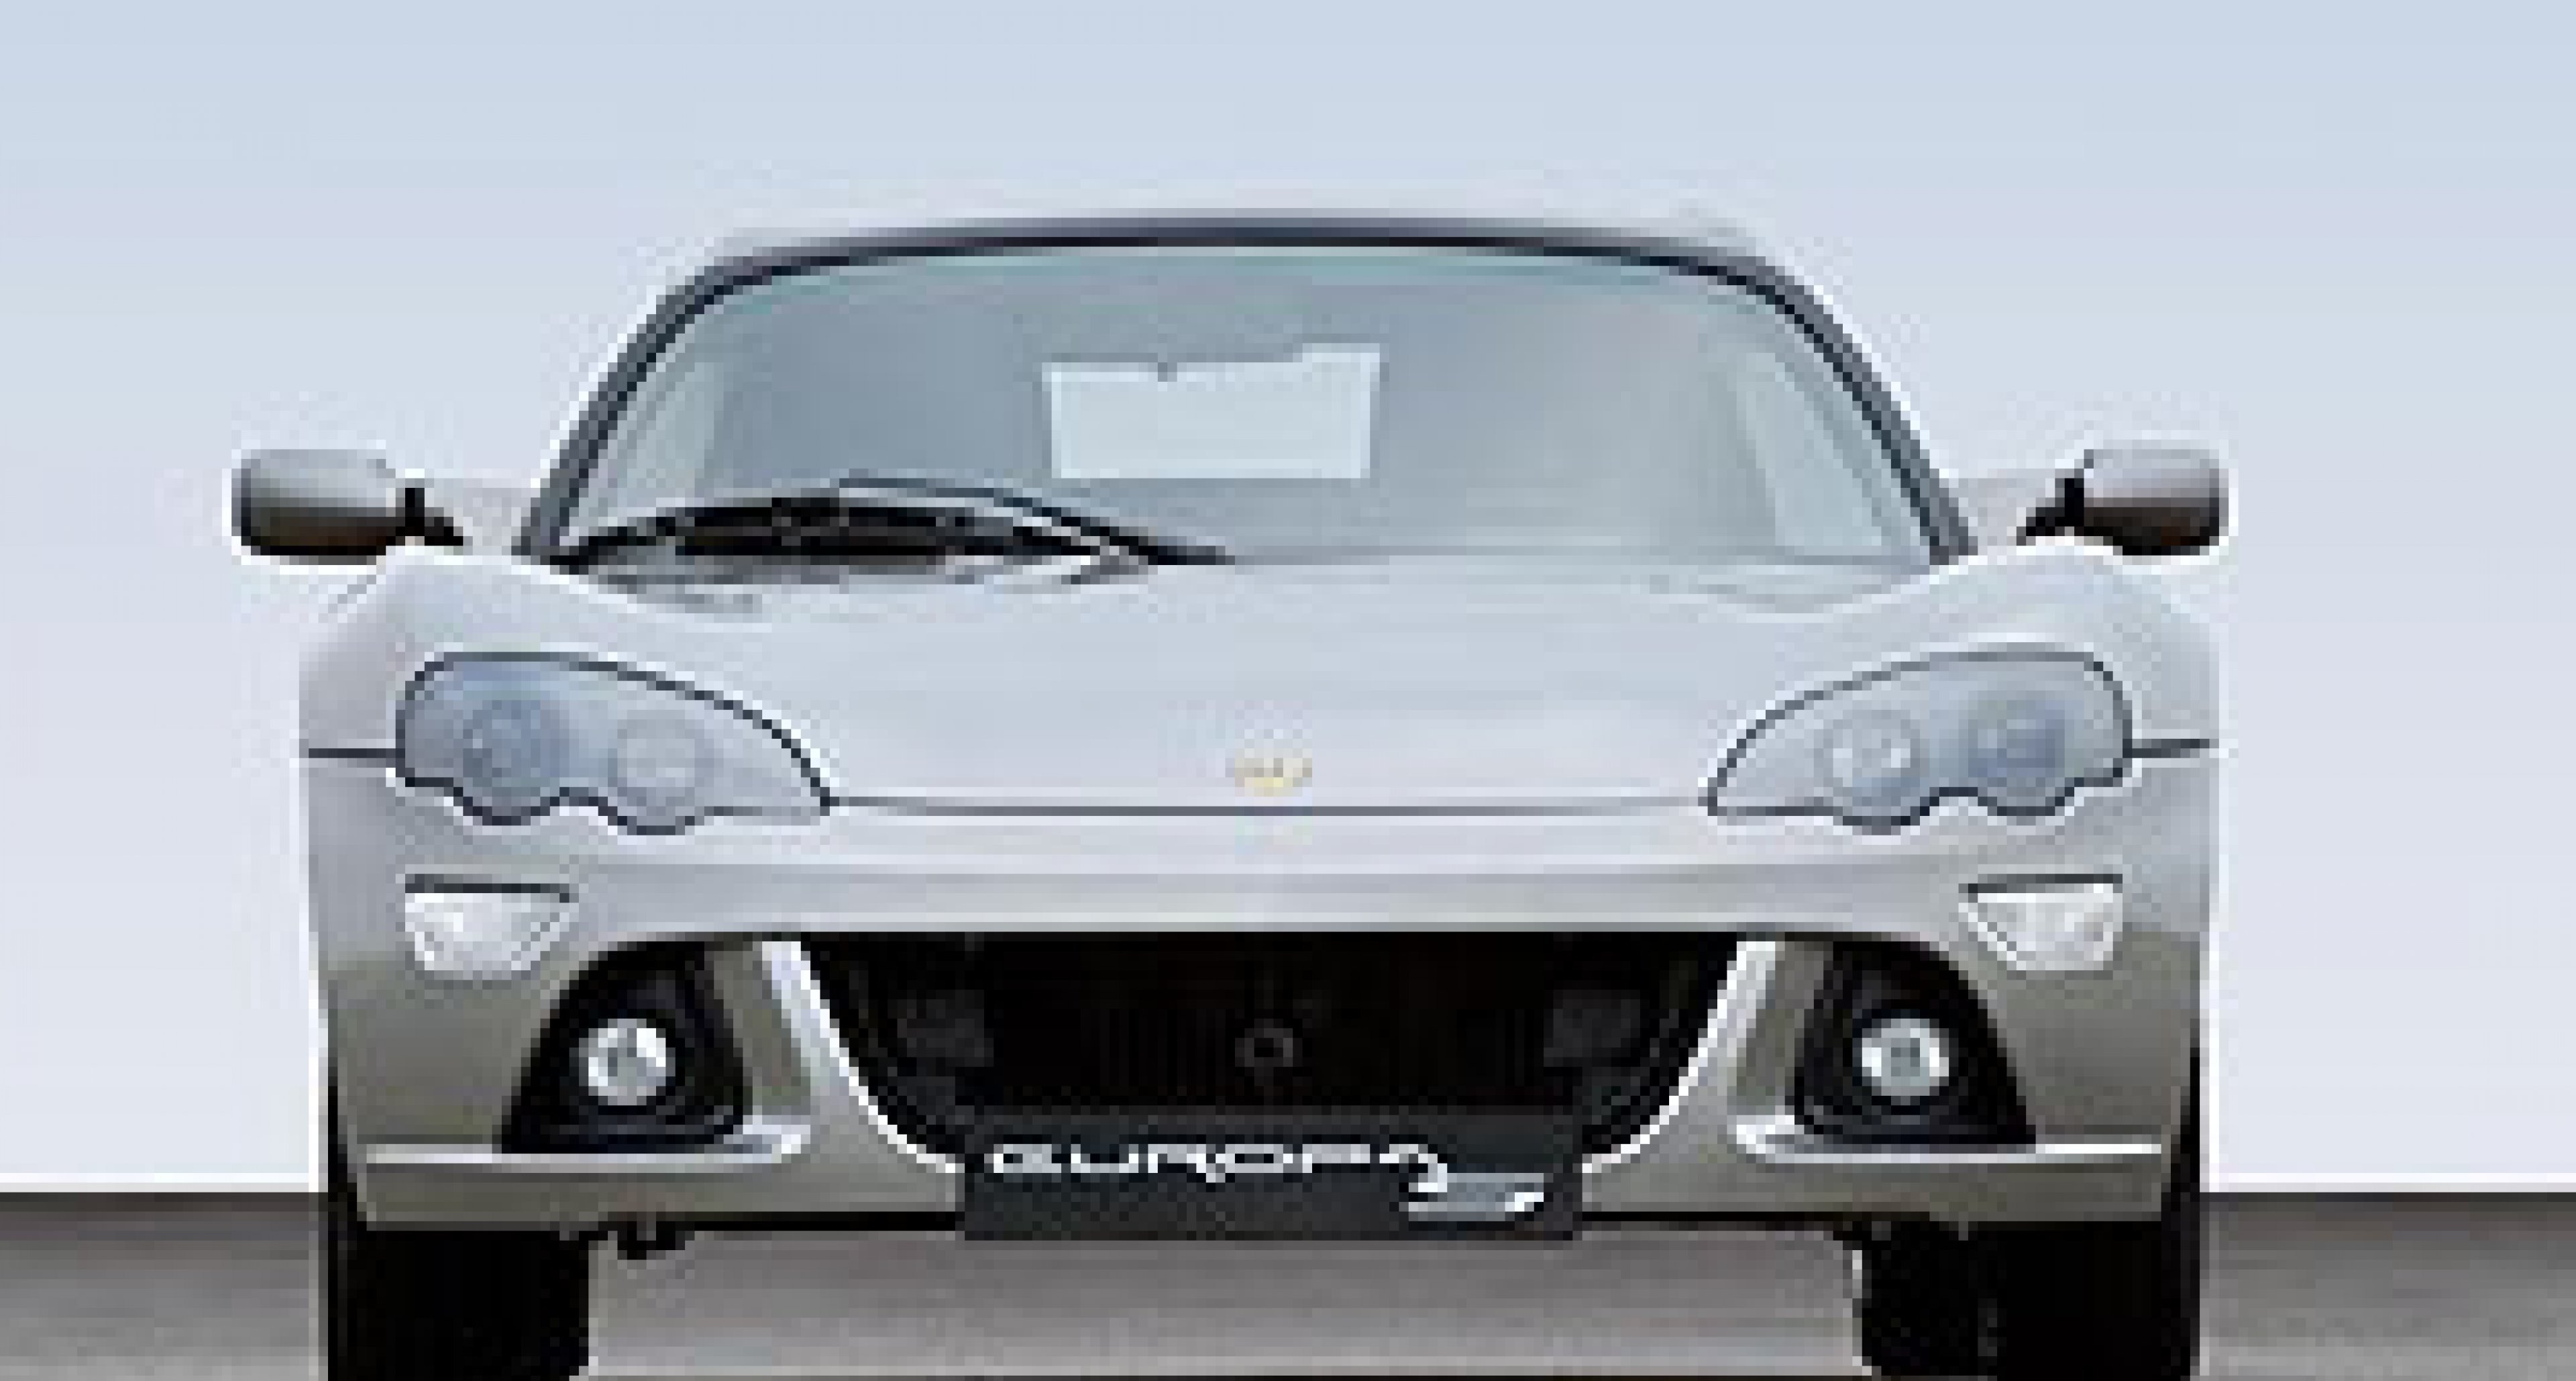 The new Lotus Europa S